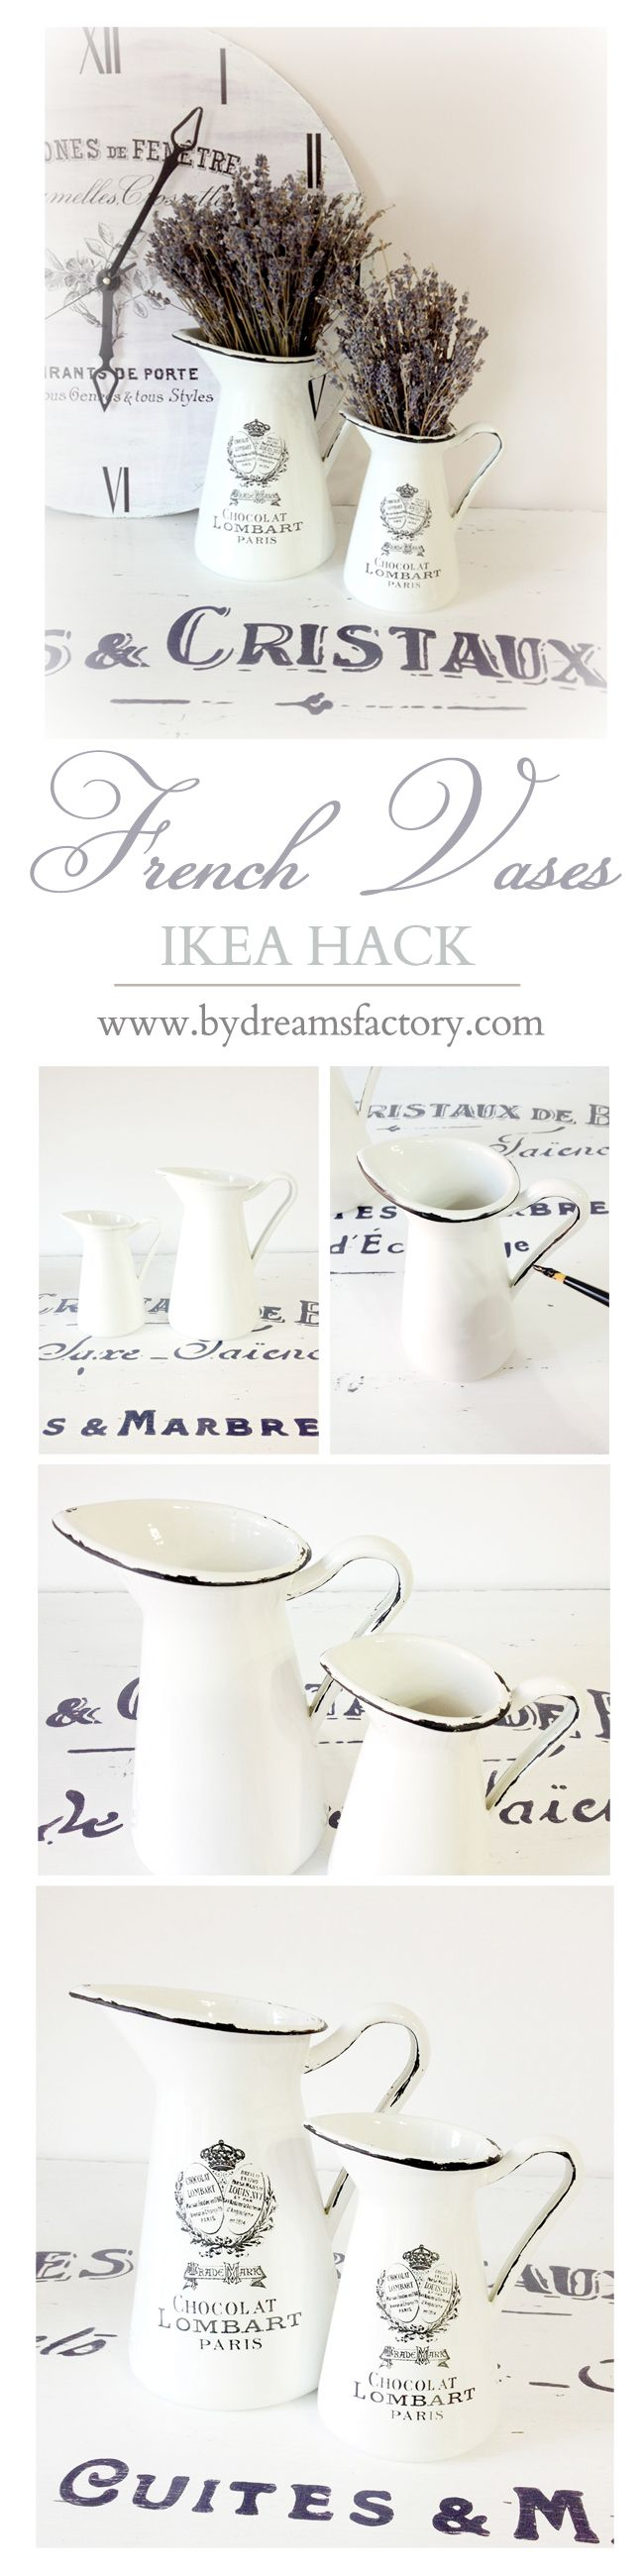 DIY: French Vases (Ikea hack) | Dreams Factory http://www.bydreamsfactory.com/2015/07/diy-french-vases-ikea-hack-tutorial.html